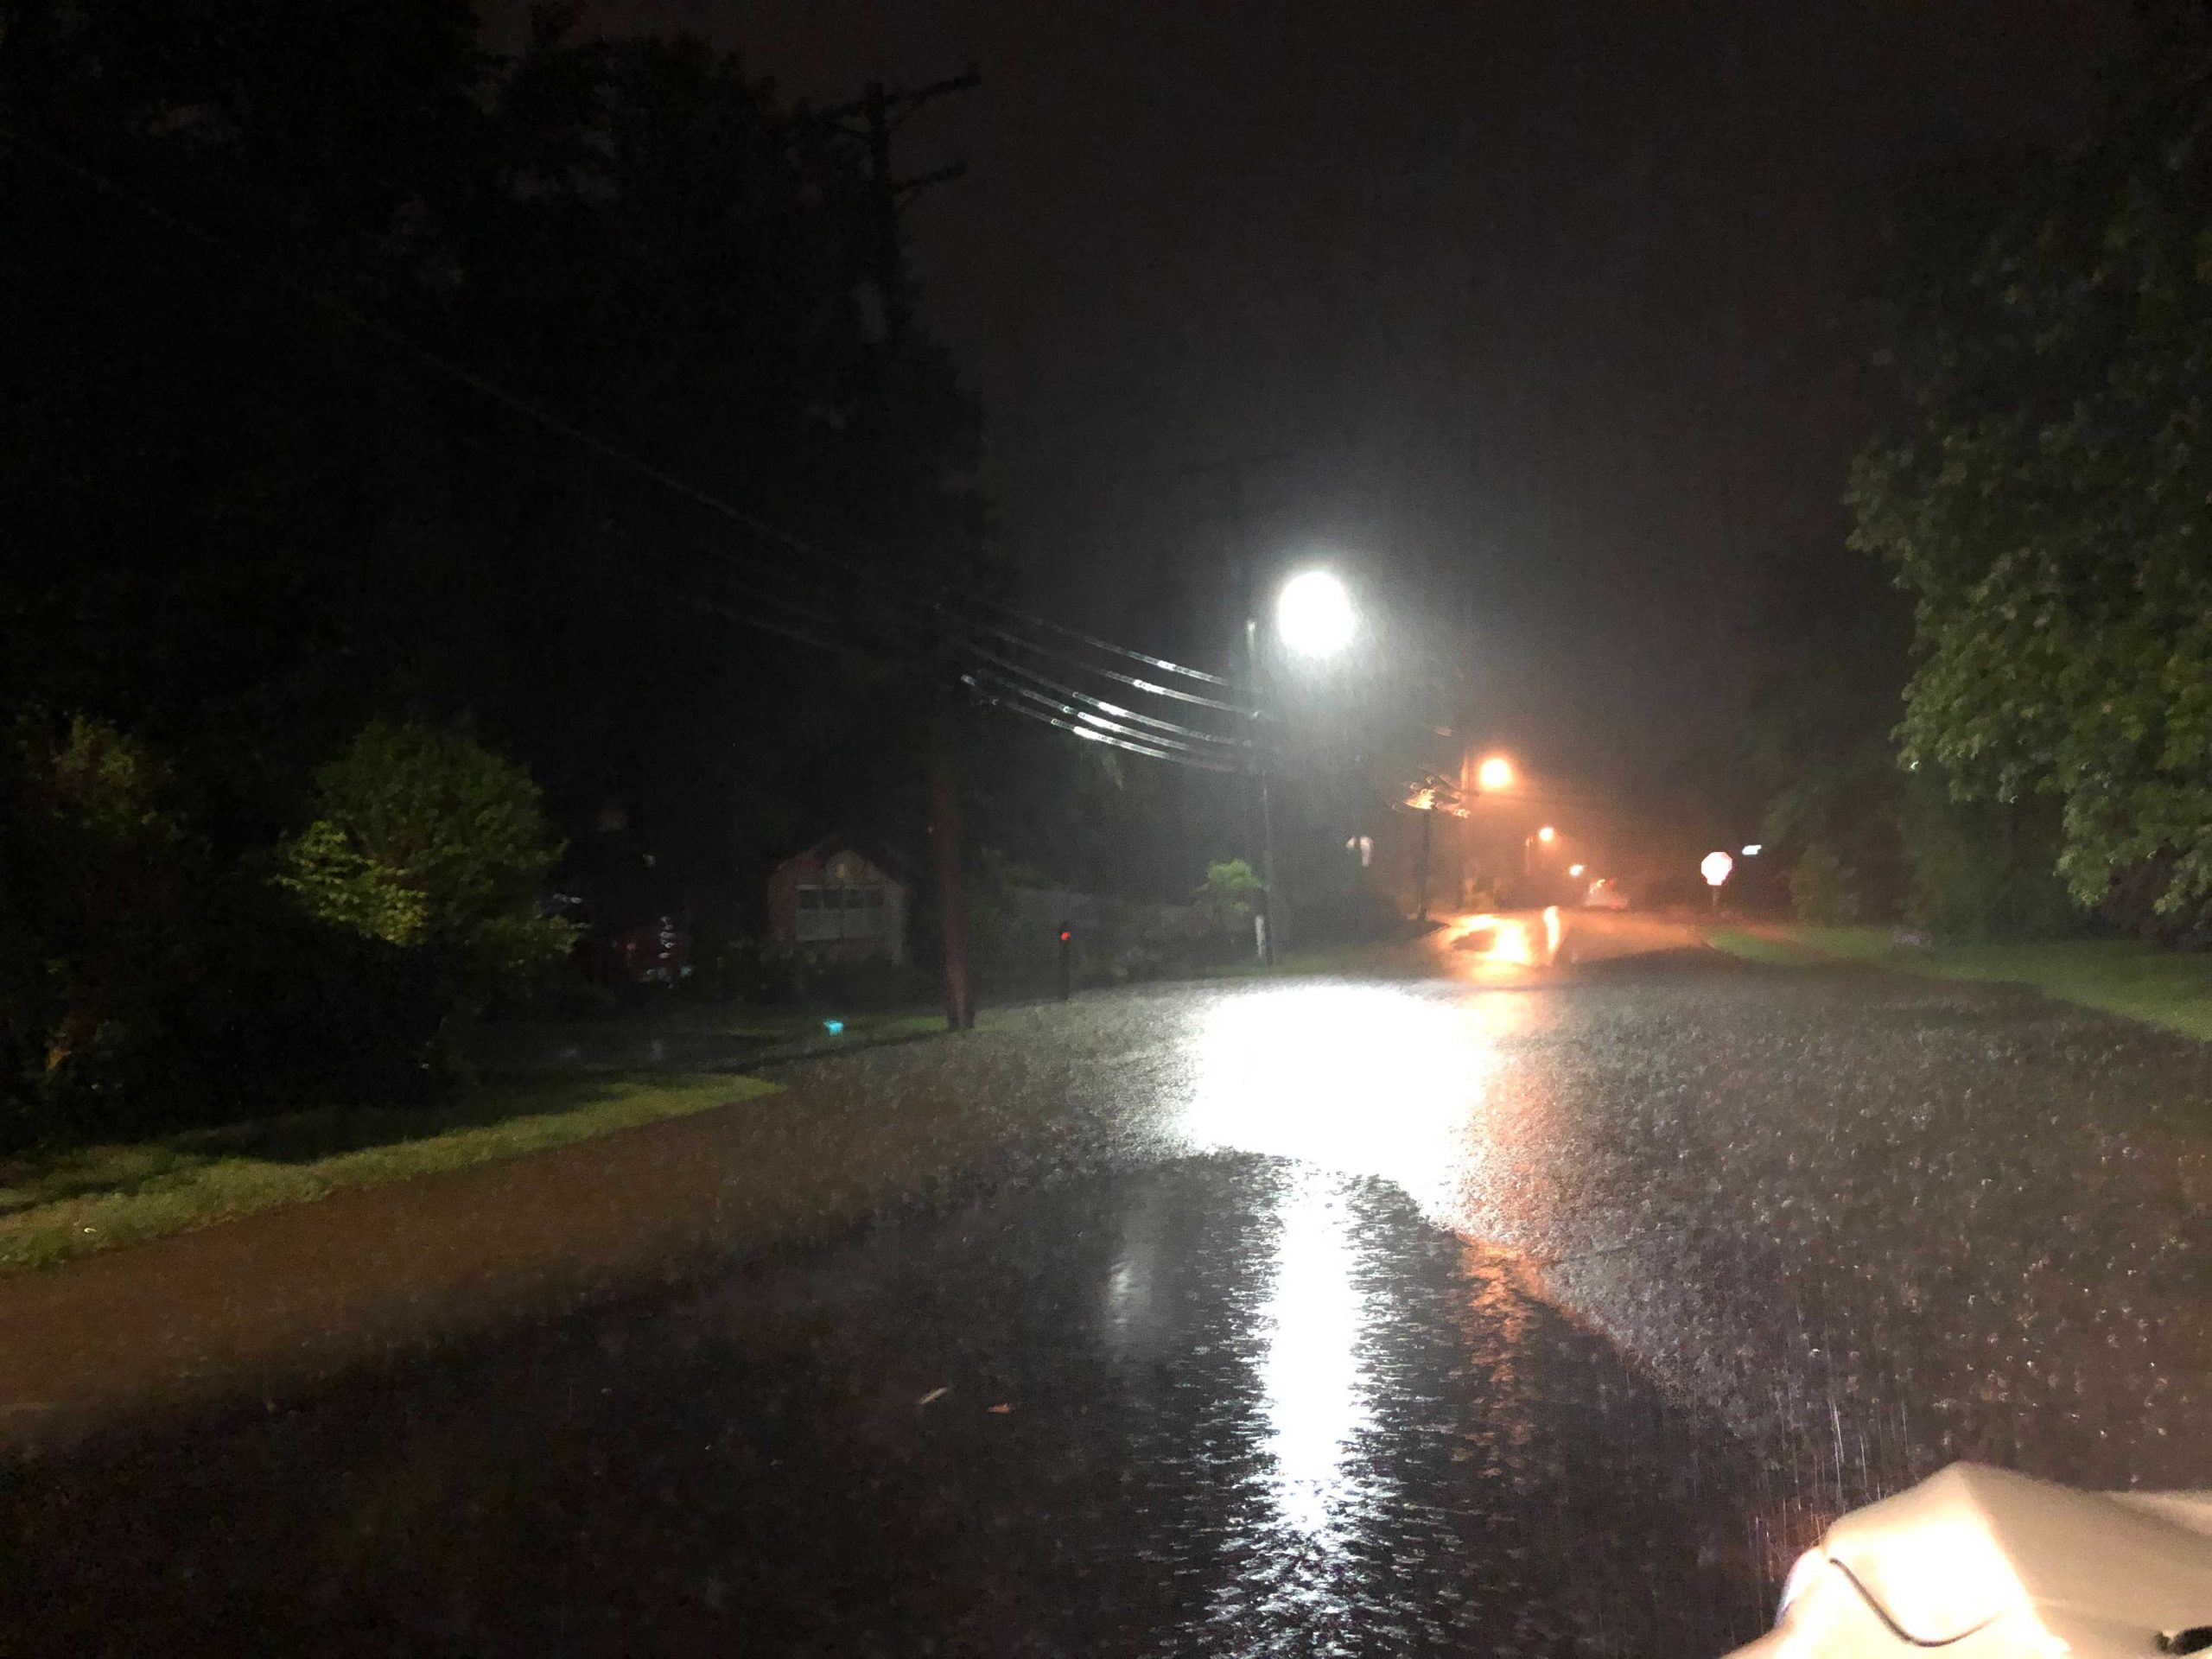 West Ash street and West Boulevard flooding.